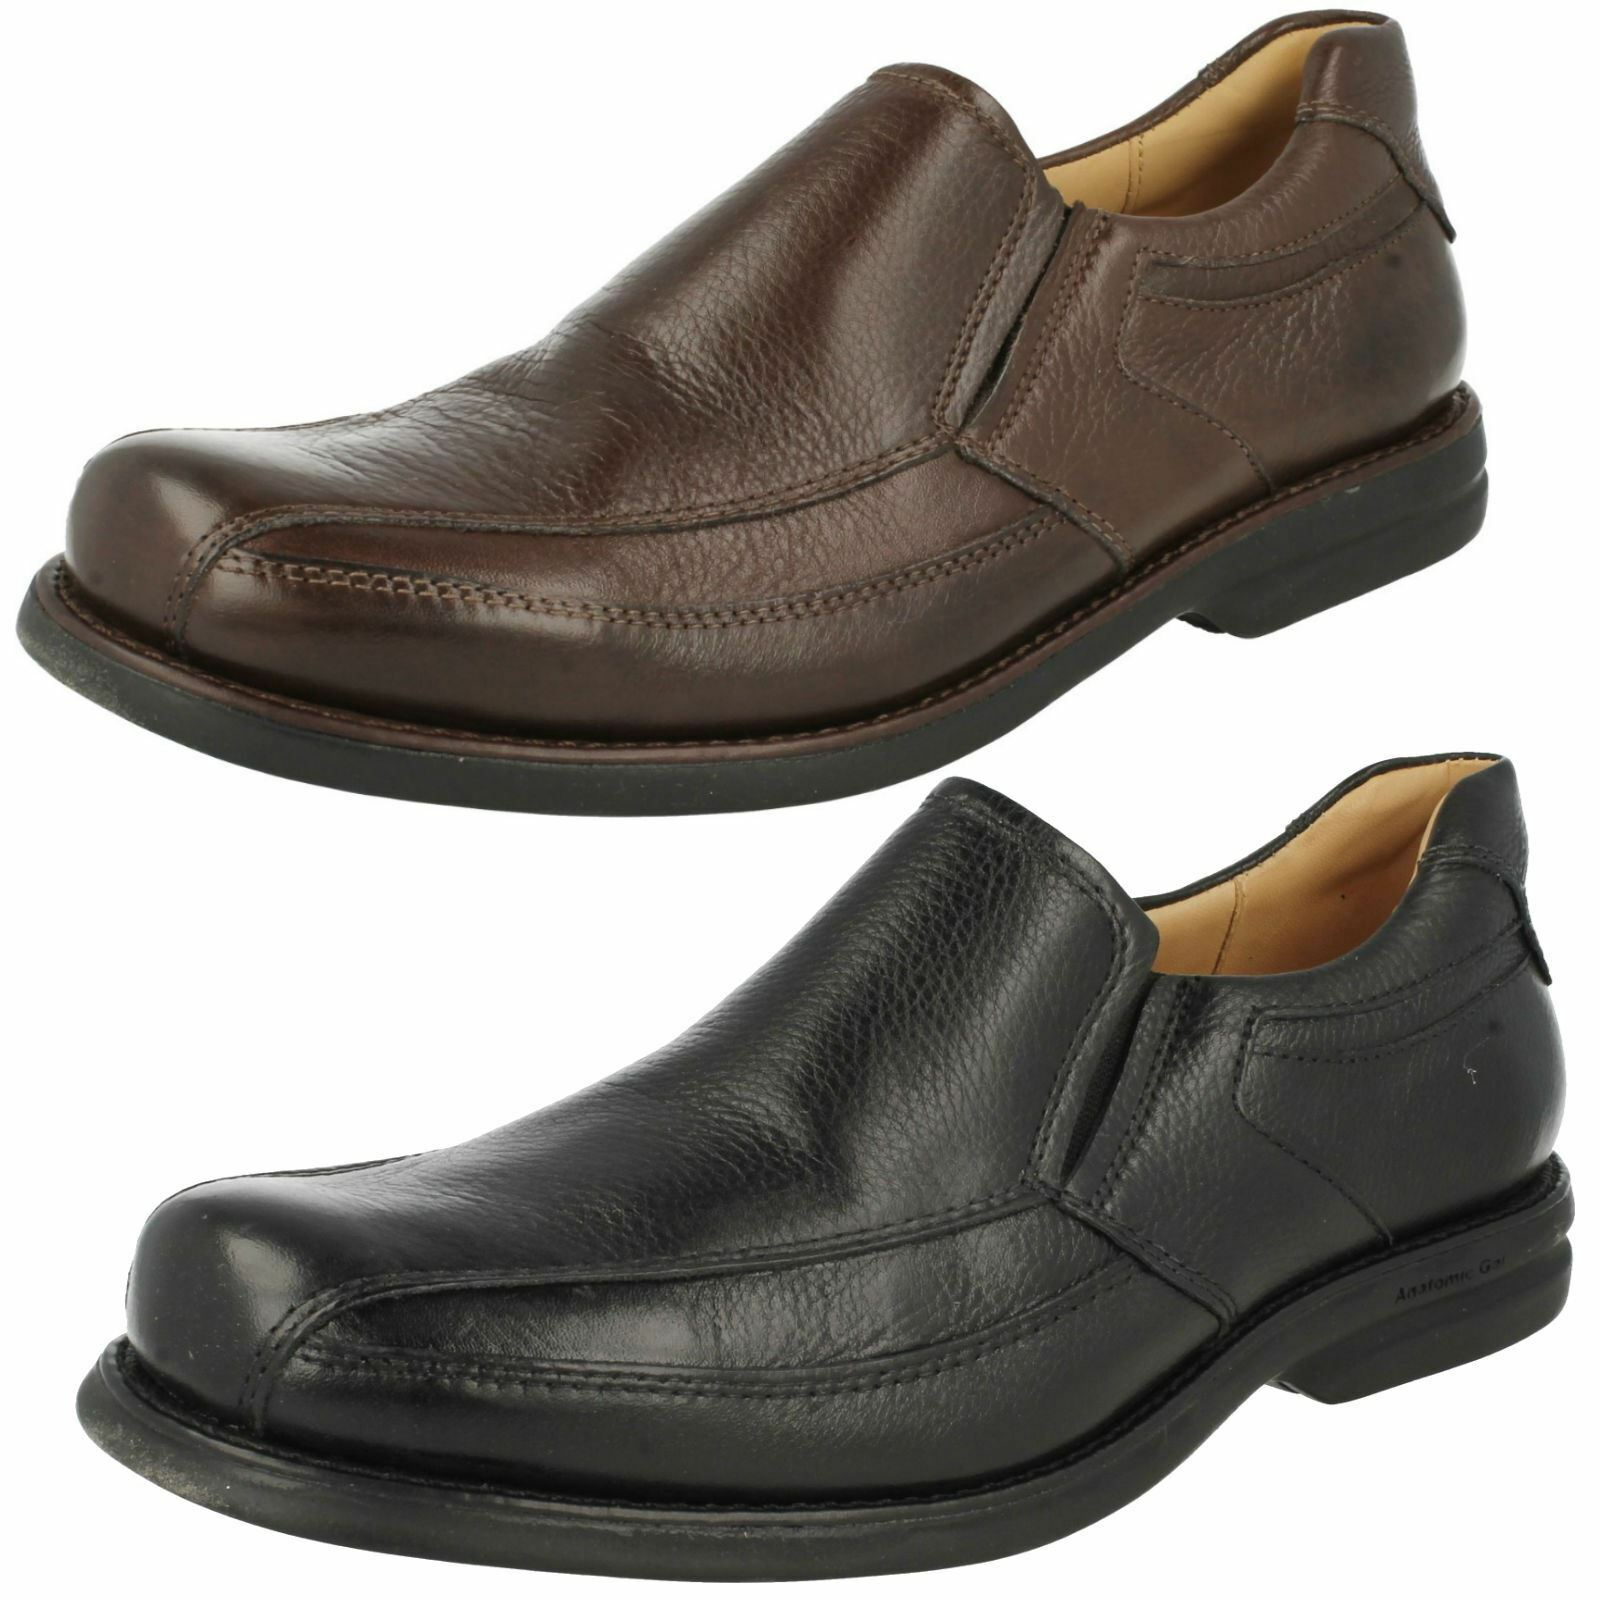 Billig hohe Qualität Mens Anatomic Urupa Formal Loafer Urupa Anatomic 7eefe8